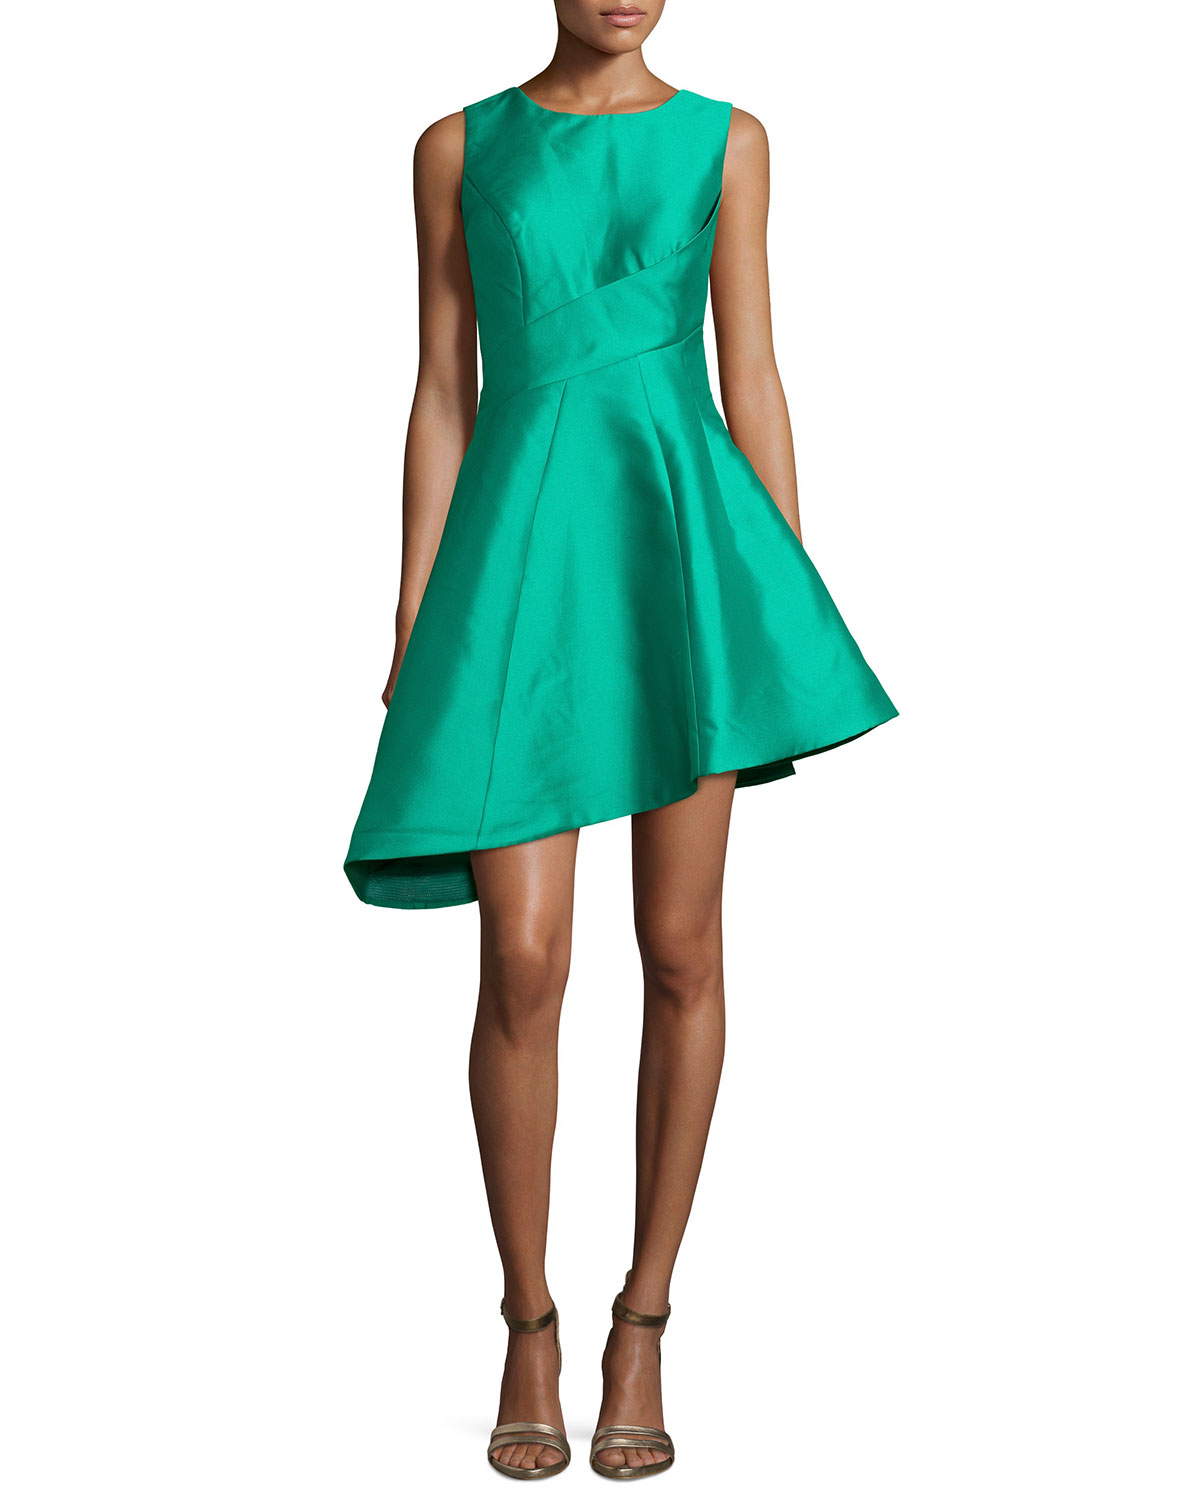 Sleeveless Asymmetric Cocktail Dress, Size: 6, Green - Jovani